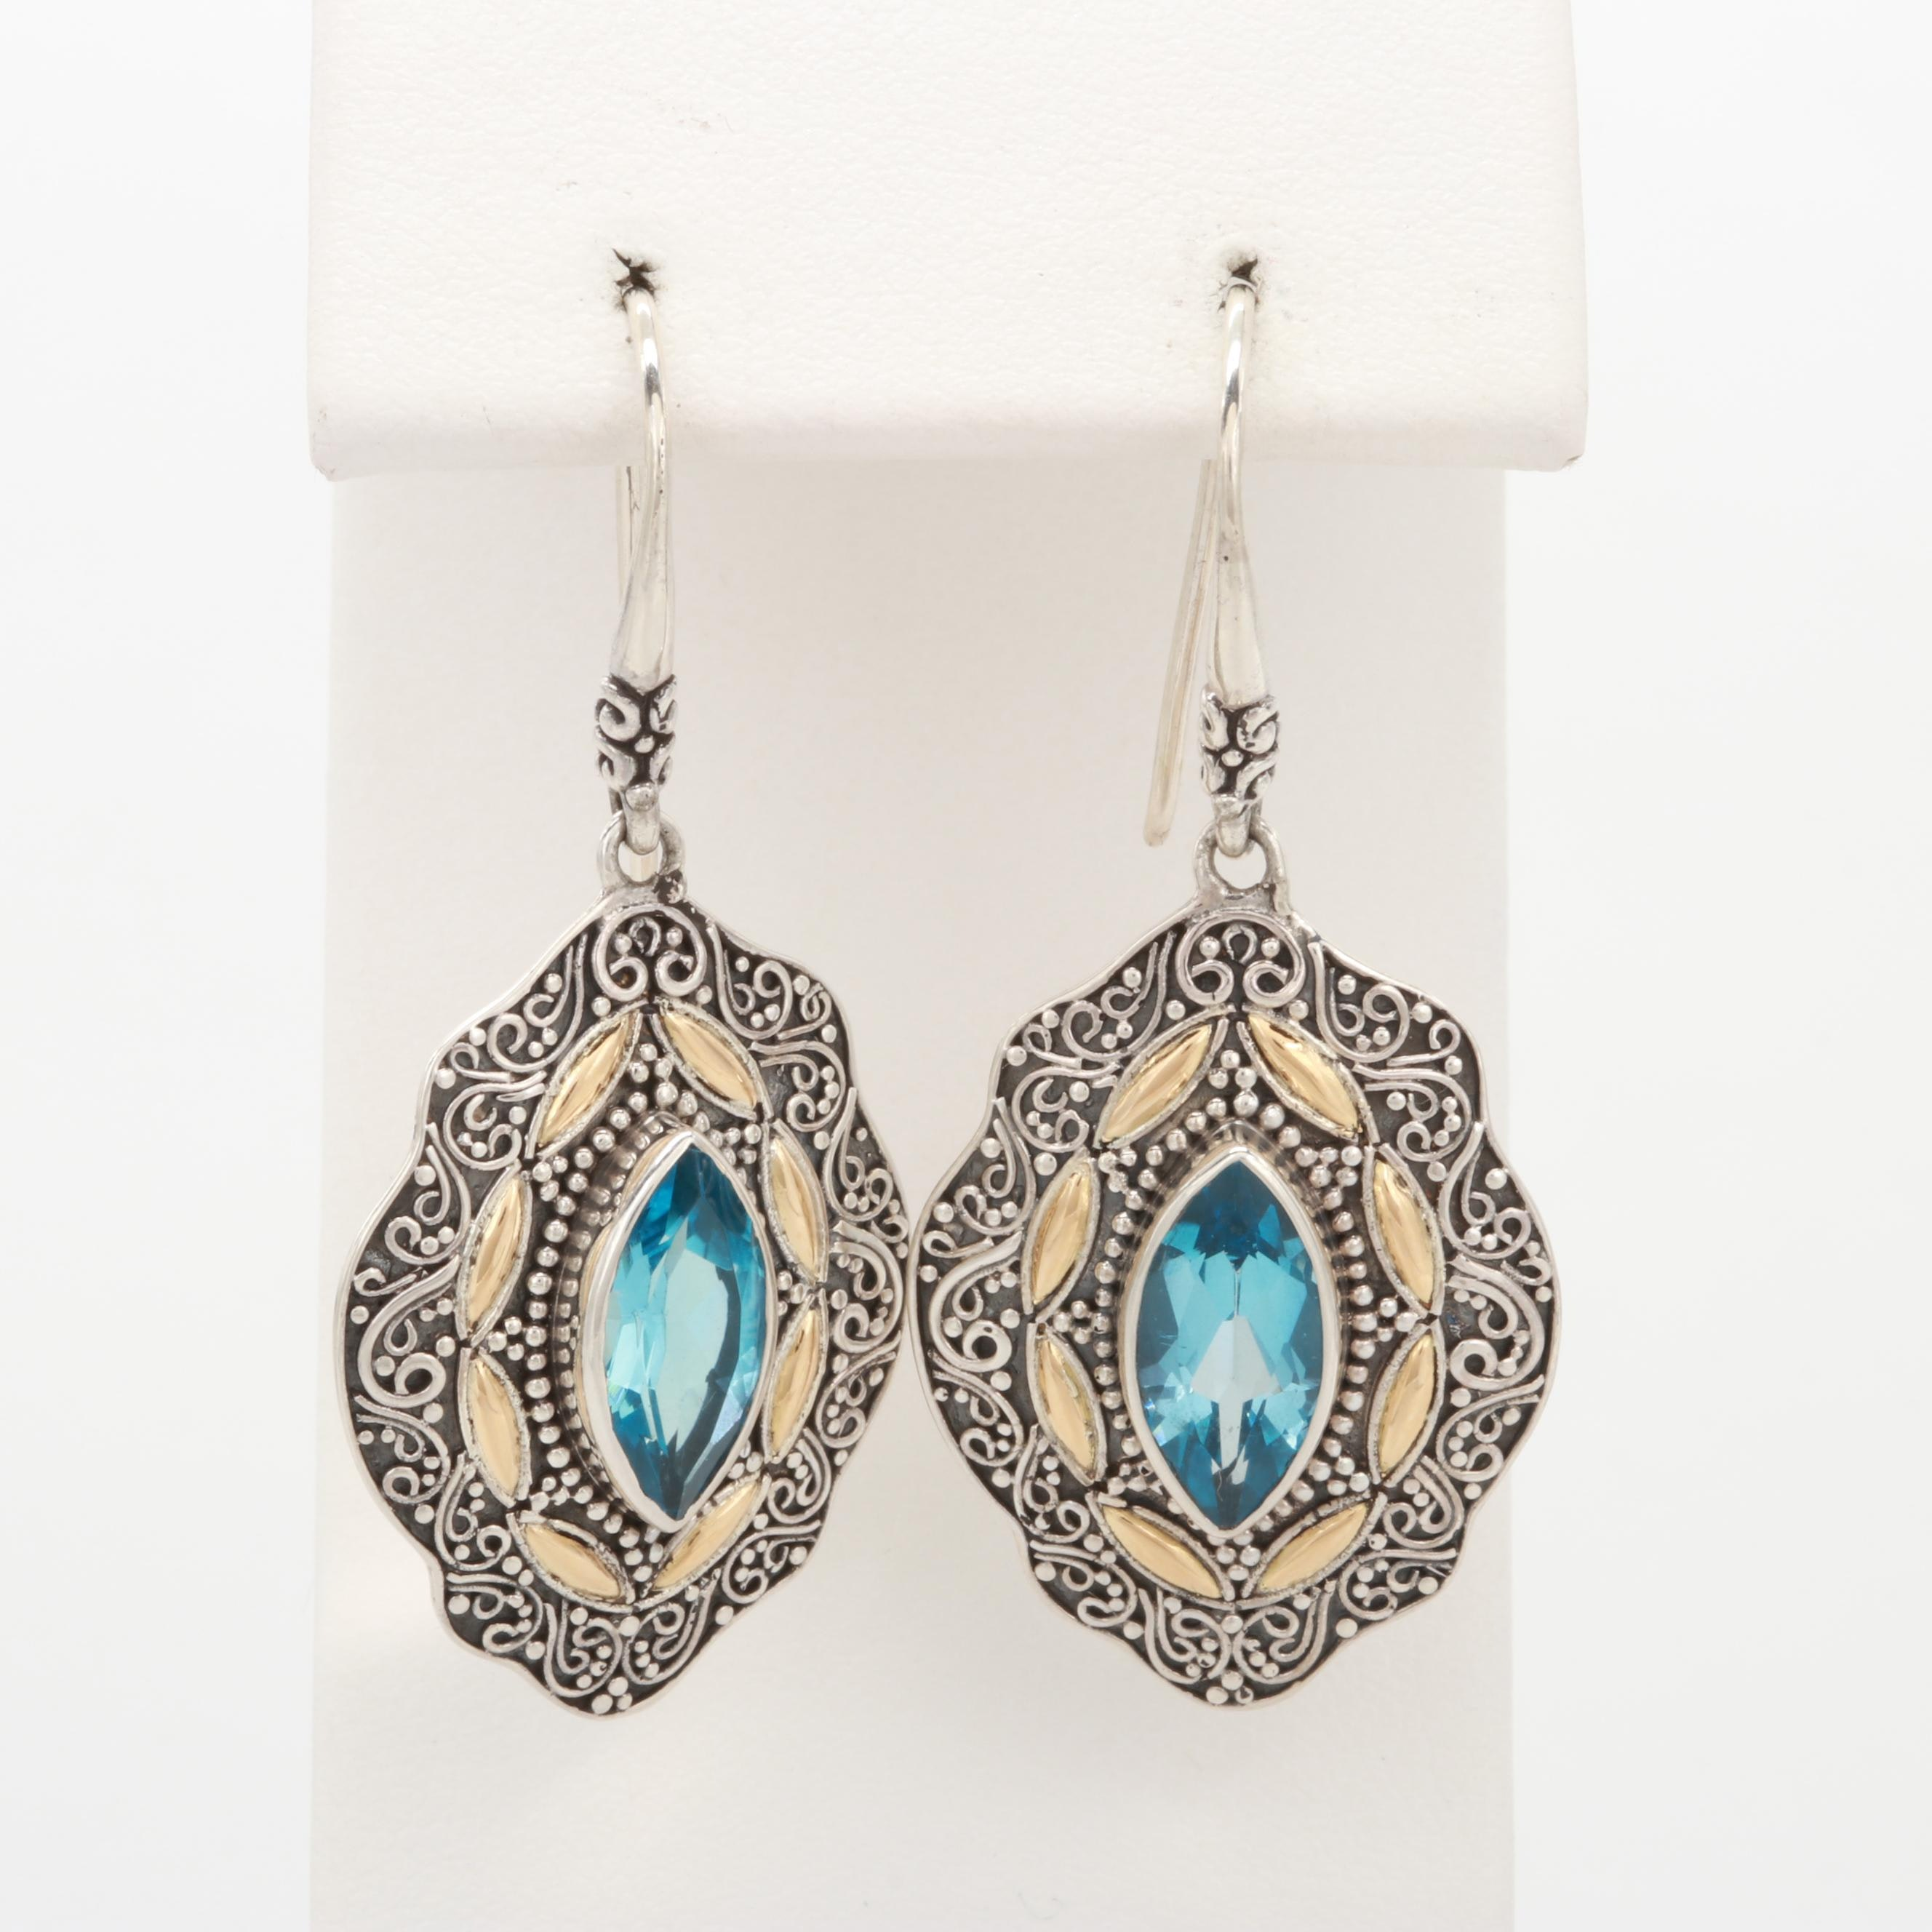 Robert Manse Sterling Silver Blue Topaz Earrings with 18K Yellow Gold Accents